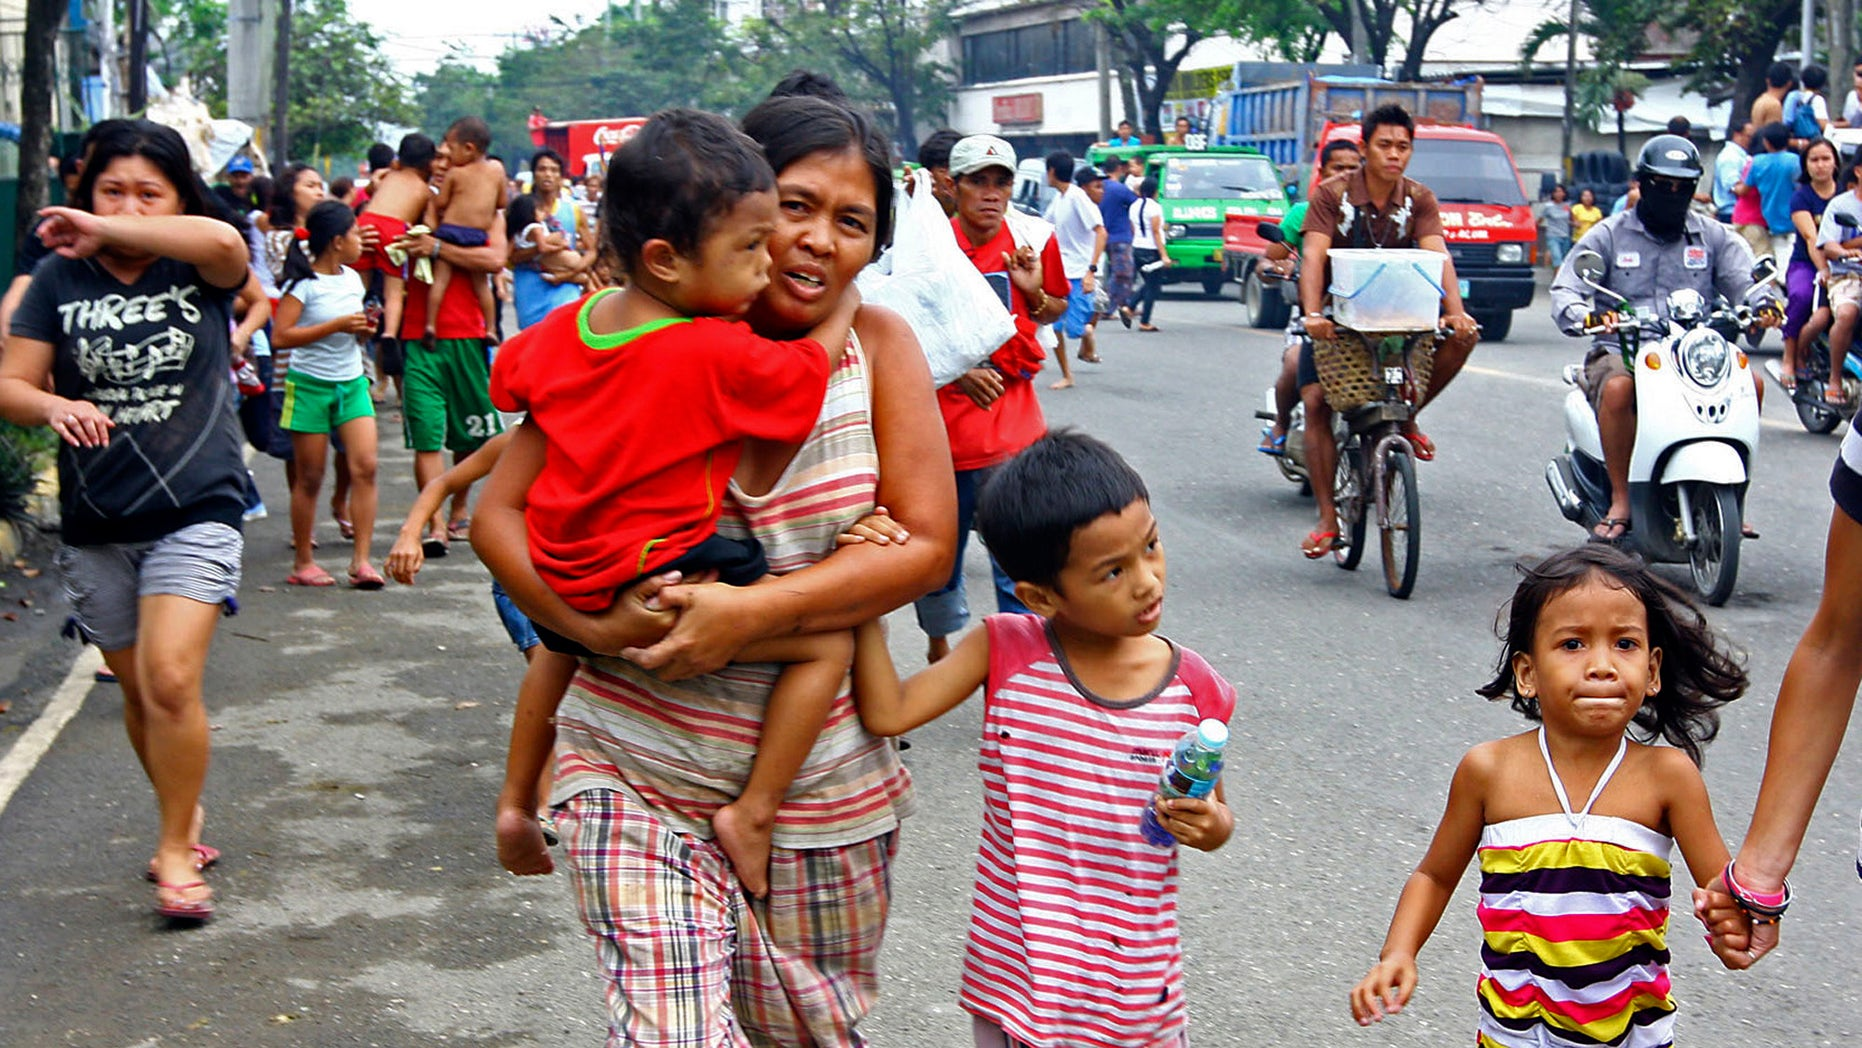 Feb. 6, 2012: Residents rush to higher grounds following tsunami rumors due to a magnitude 6.9 earthquake which hit the island province of Cebu and other central Philippine provinces.